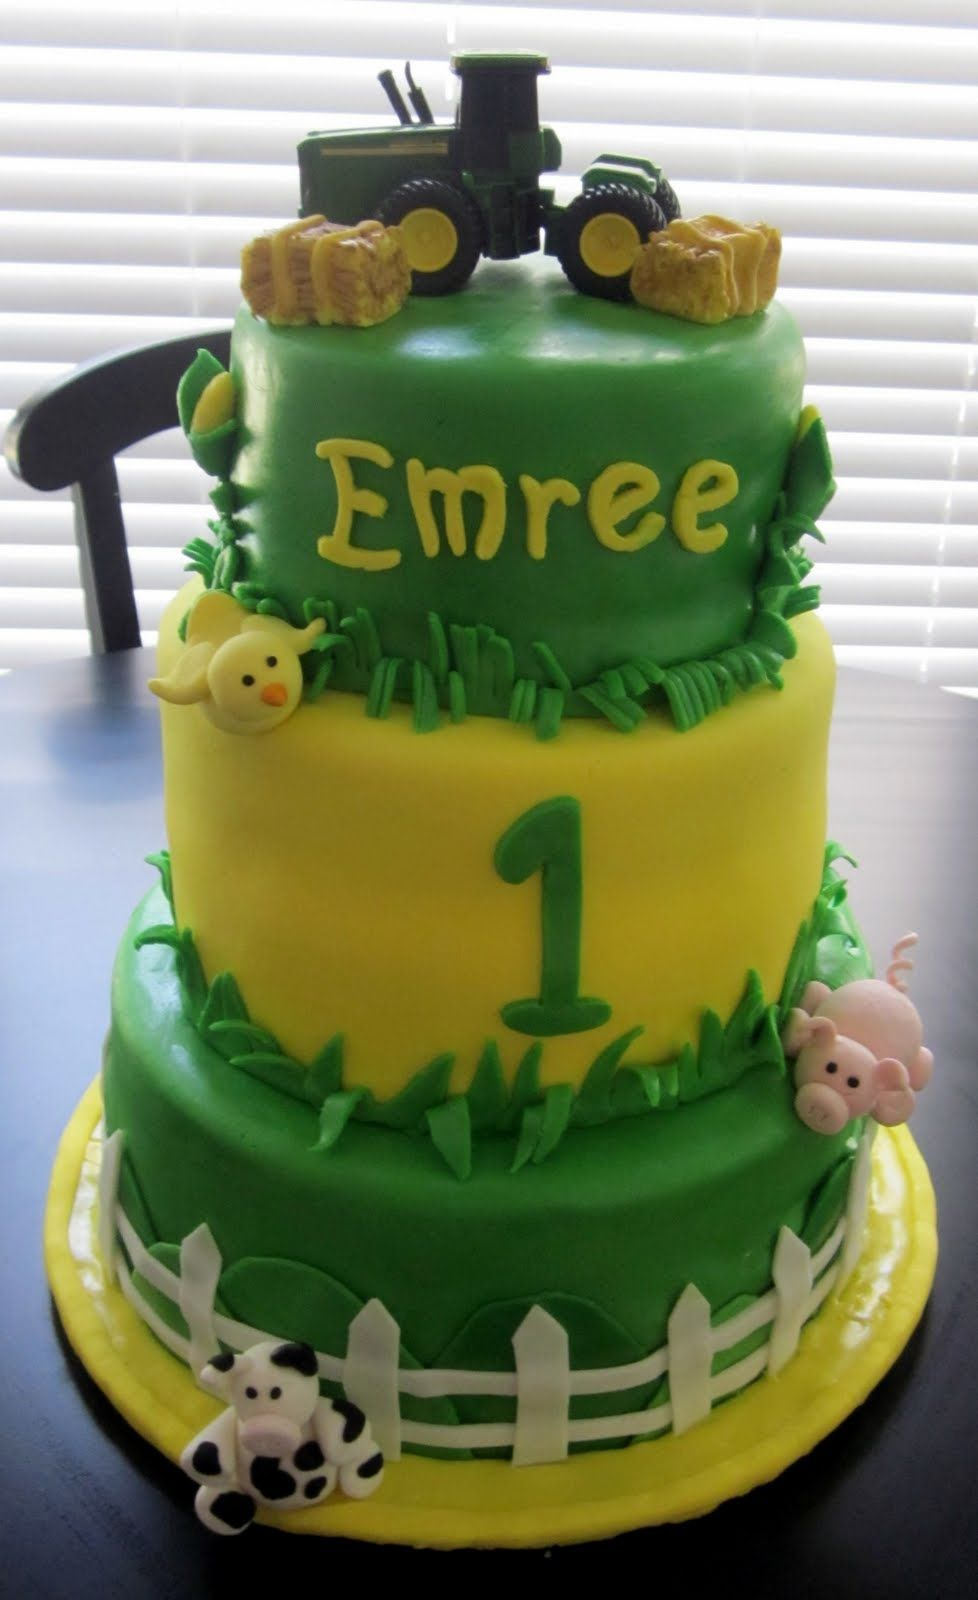 John Deere Birthday Cake with pigs and cows and chicksif i ever